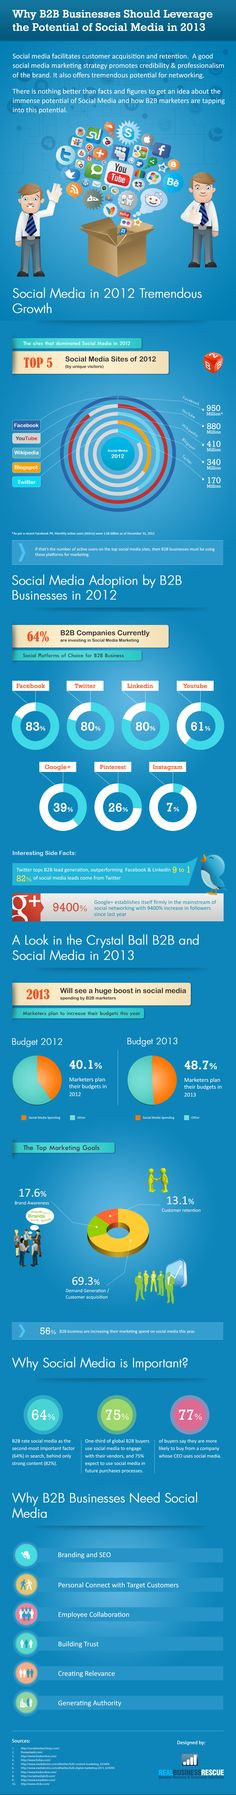 Why B2B Brands Must Invest In Social Media In 2013 [INFOGRAPHIC]     Social media saw tremendous growth in 2012 – Facebook, Twitter, LinkedIn, Pinterest and other channels all reached major milestones – and for business to business (B2B) brands, it's never been more important to be involved.